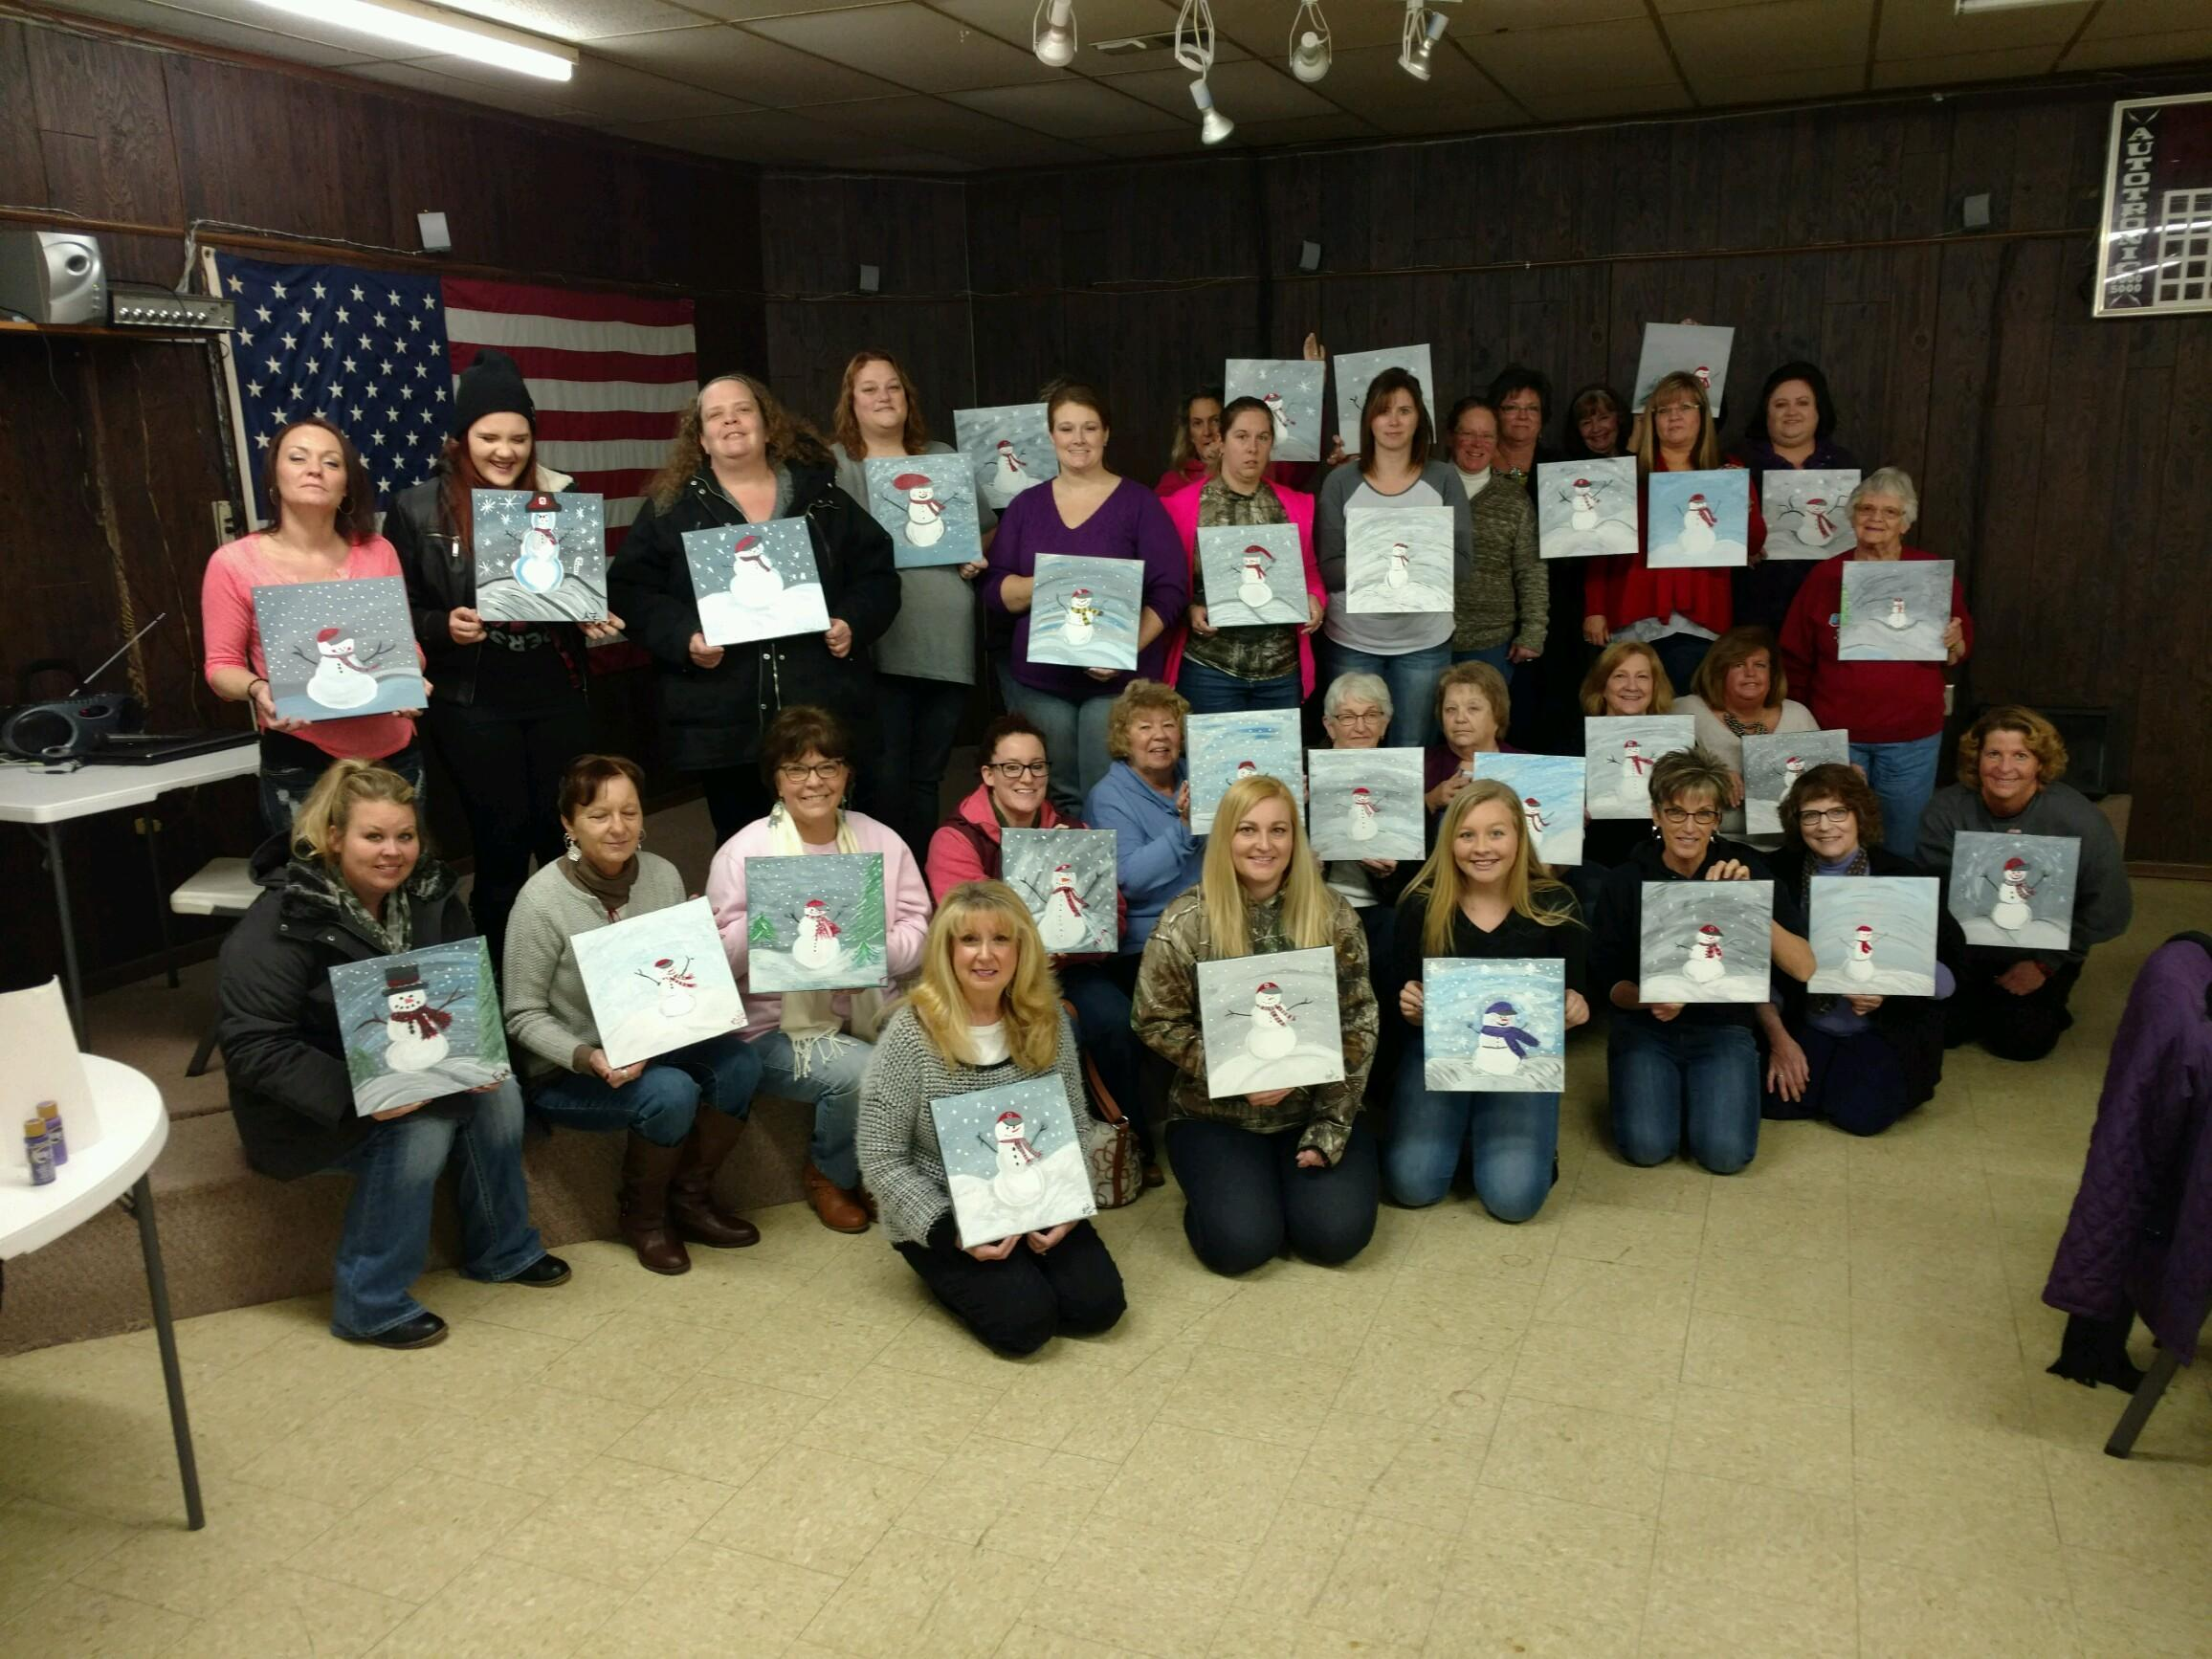 33 people participated in the Paint Mixer